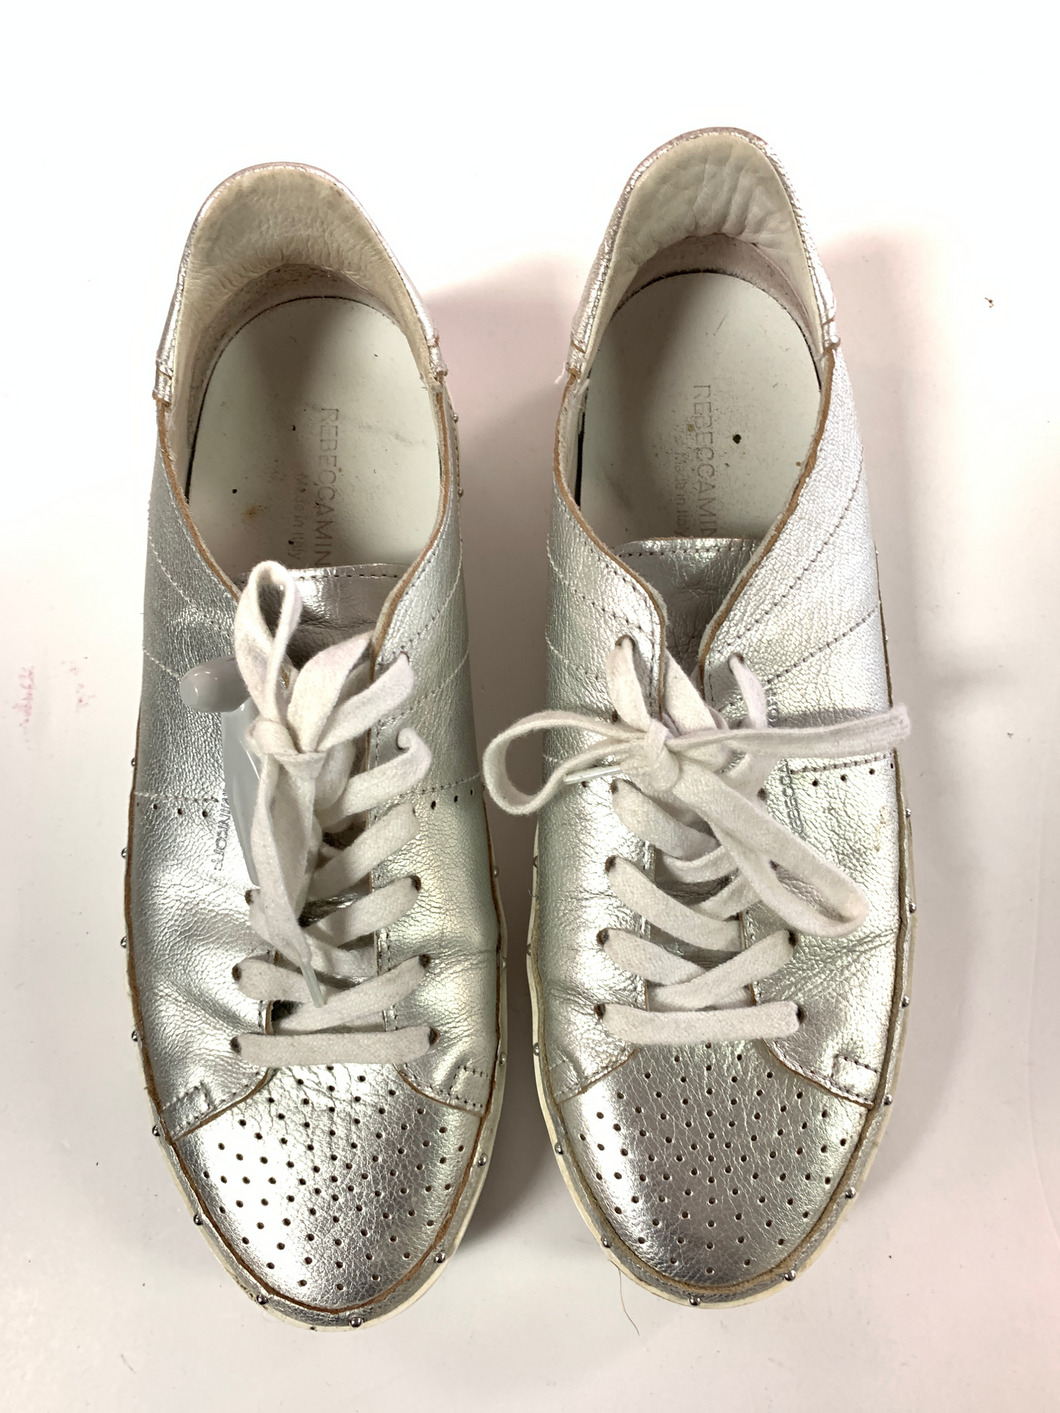 Rebecca Minkoff Casual Shoes Womens 9.5